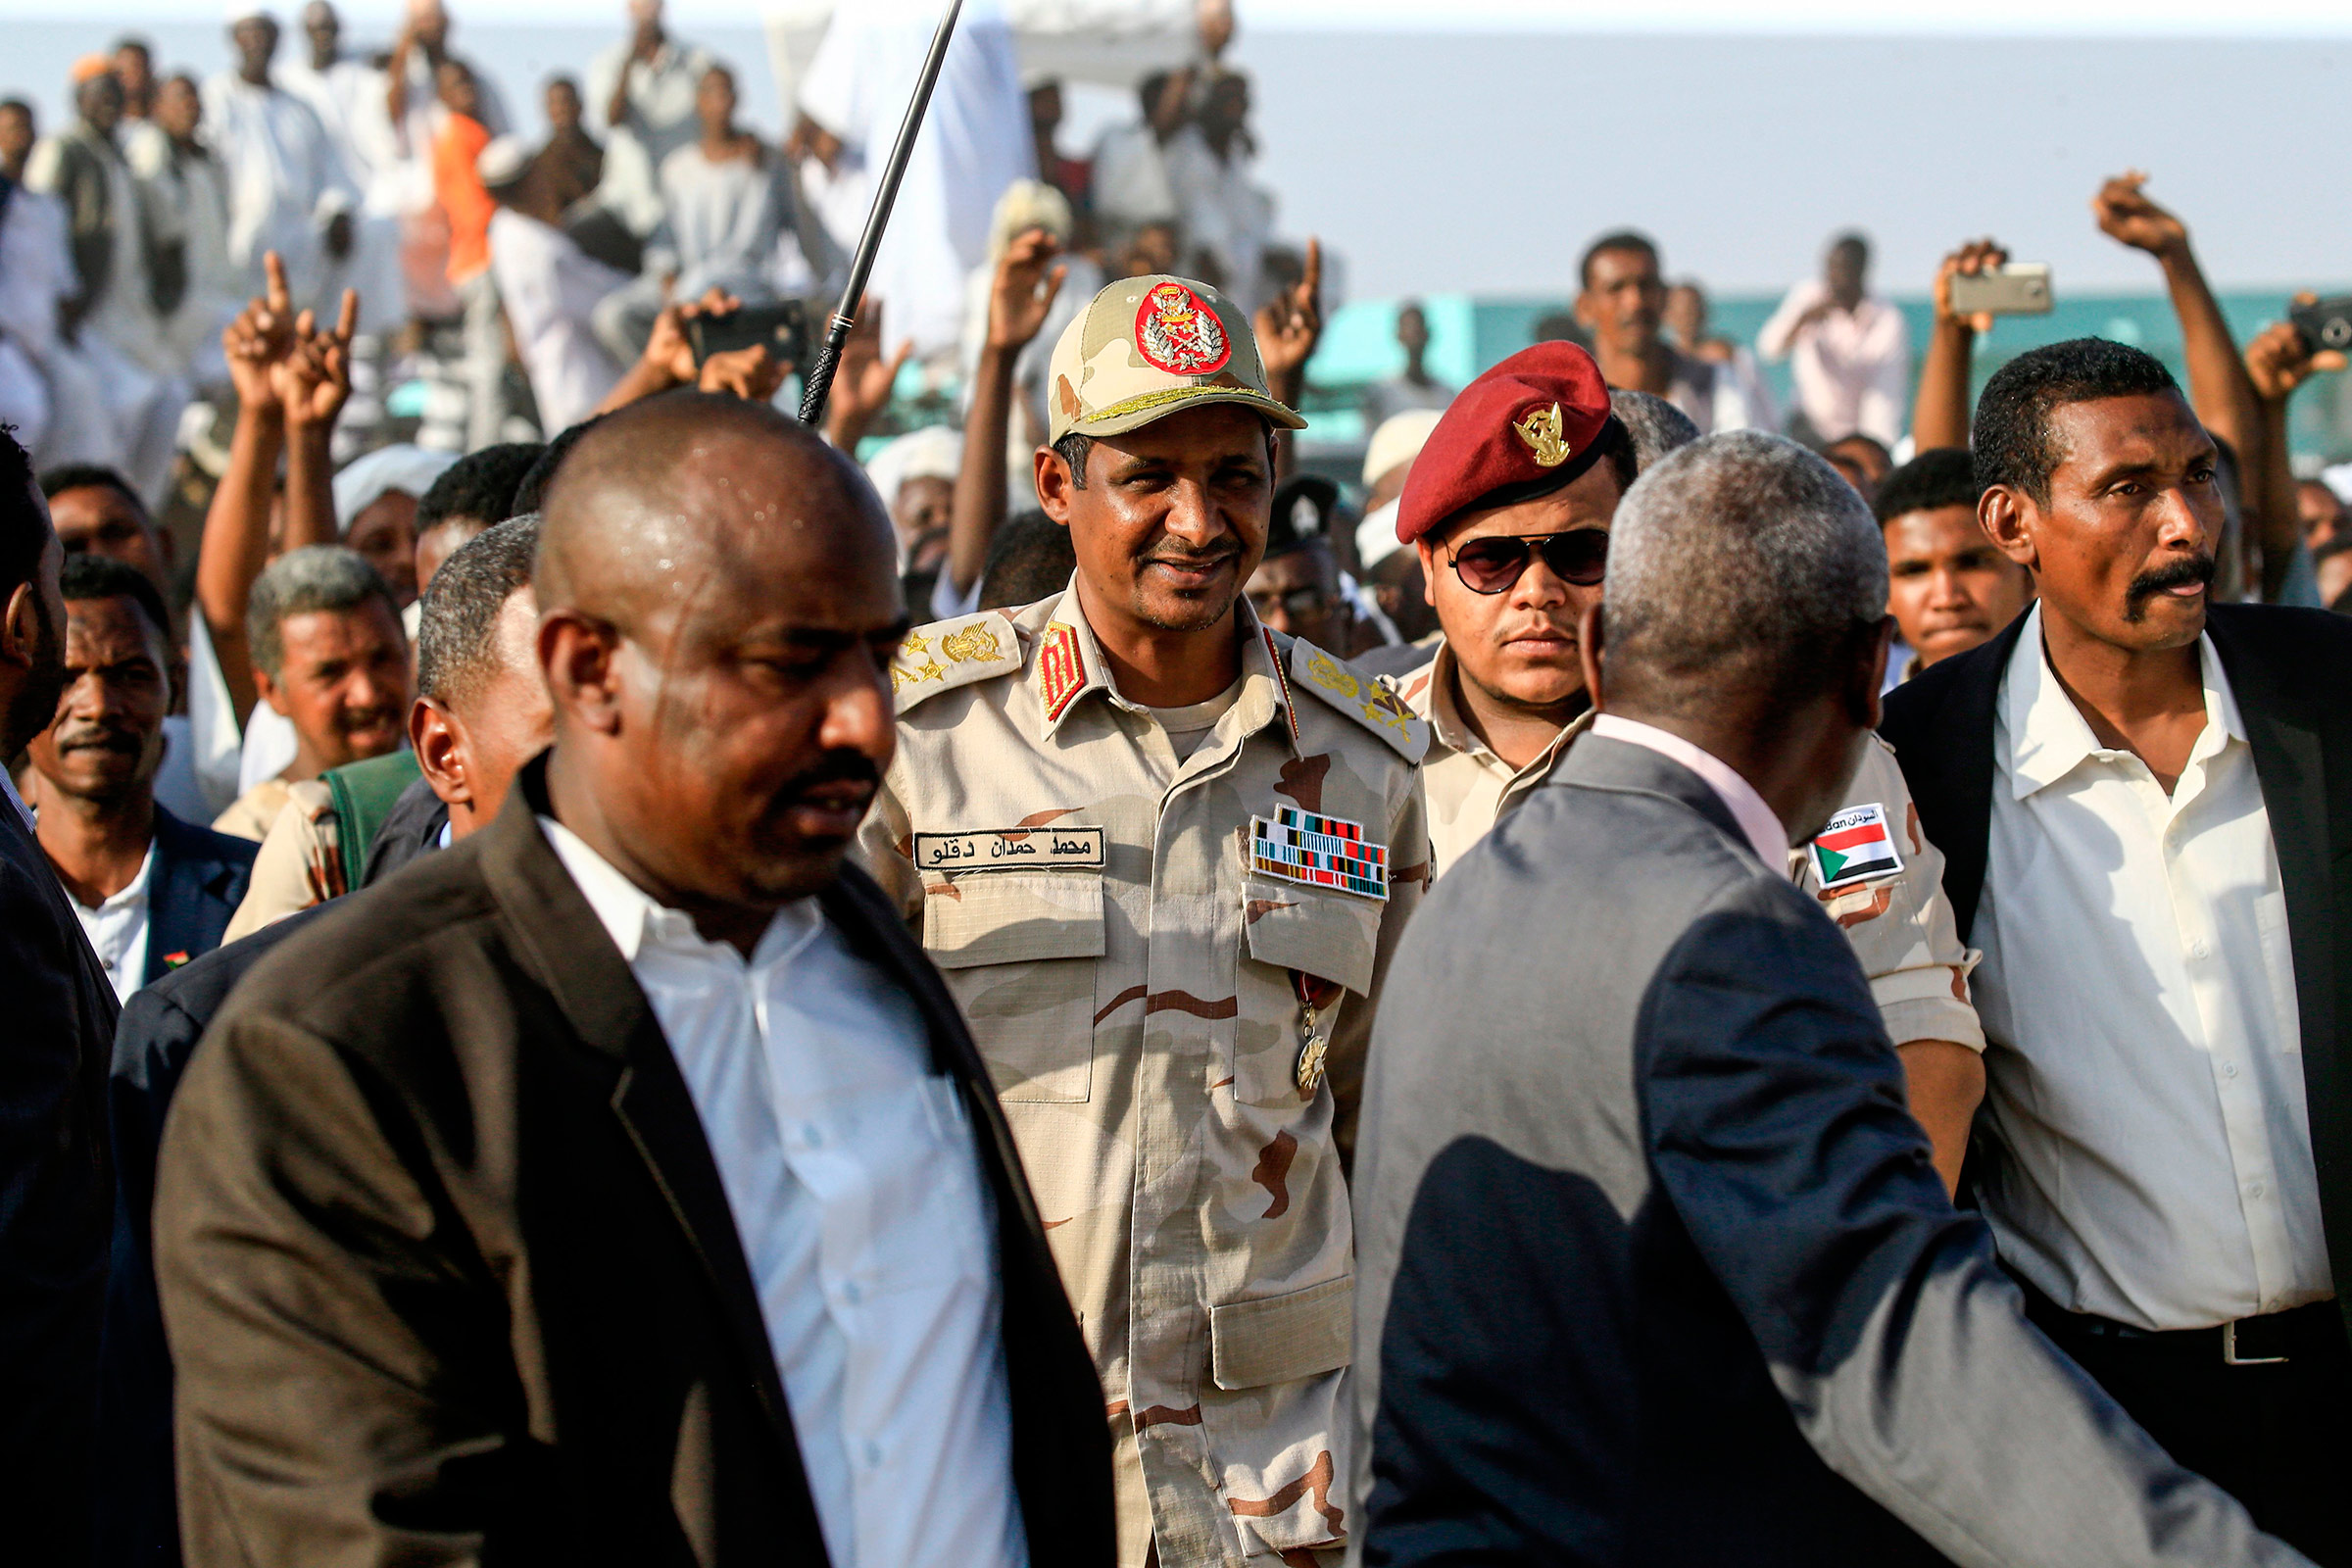 Mohamed Hamdan Dagalo, center, the deputy head of Sudan's ruling Transitional Military Council and commander of the Rapid Support Forces paramilitaries, walks in the village of Qarri, on June 15.